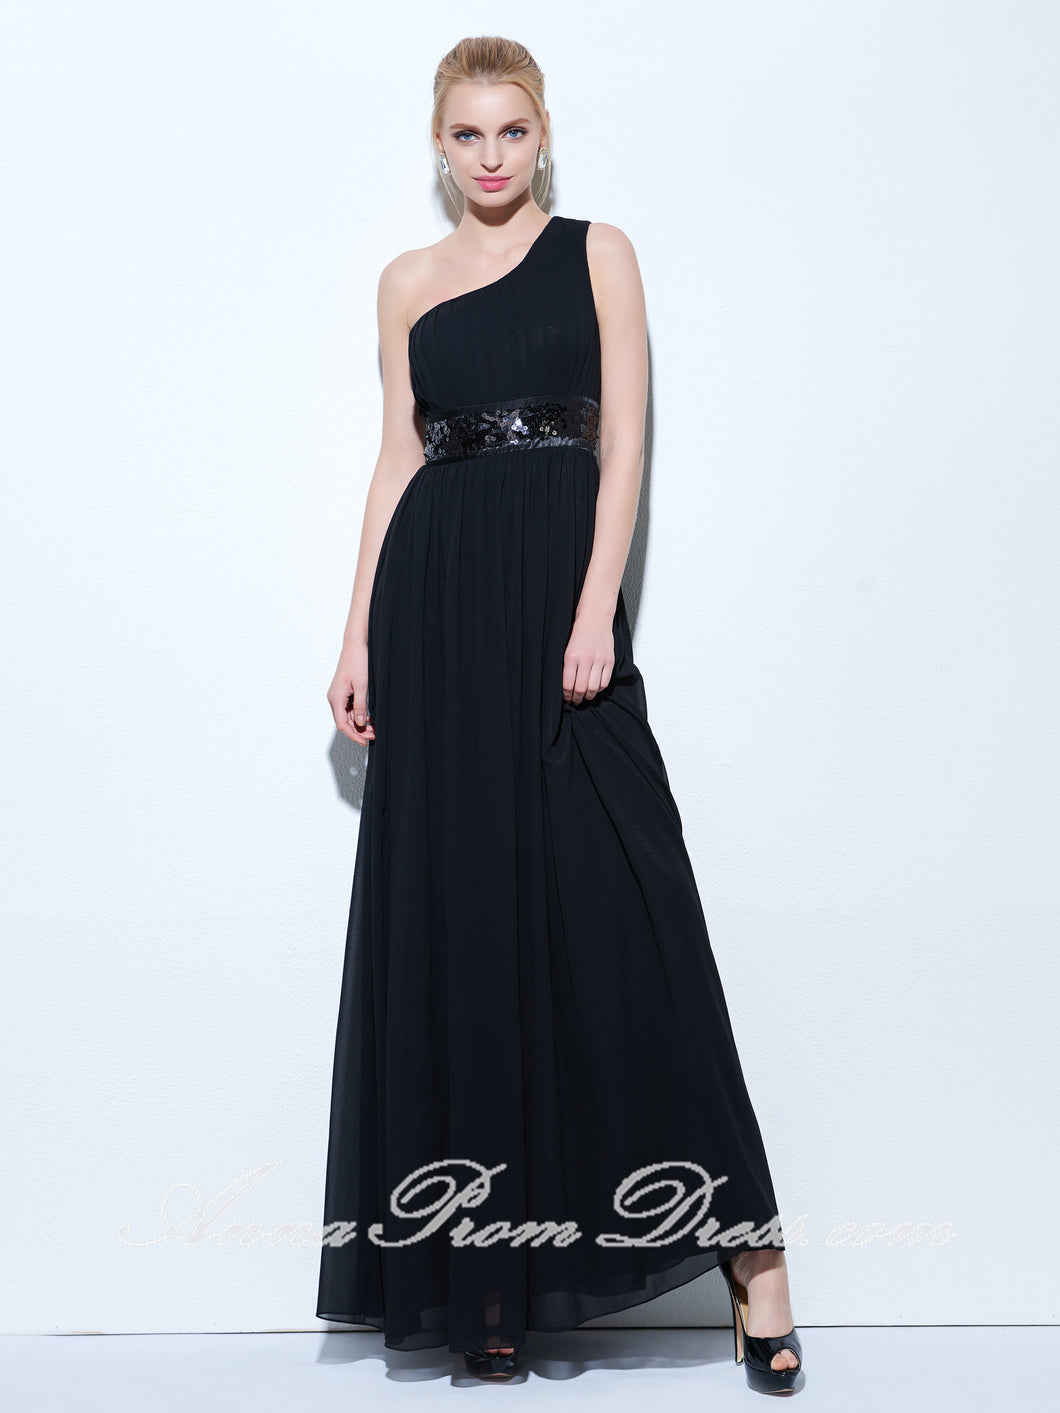 Cheap Prom Dresses A-line Floor-length Flowly Long Sexy Black Prom Dress 271494